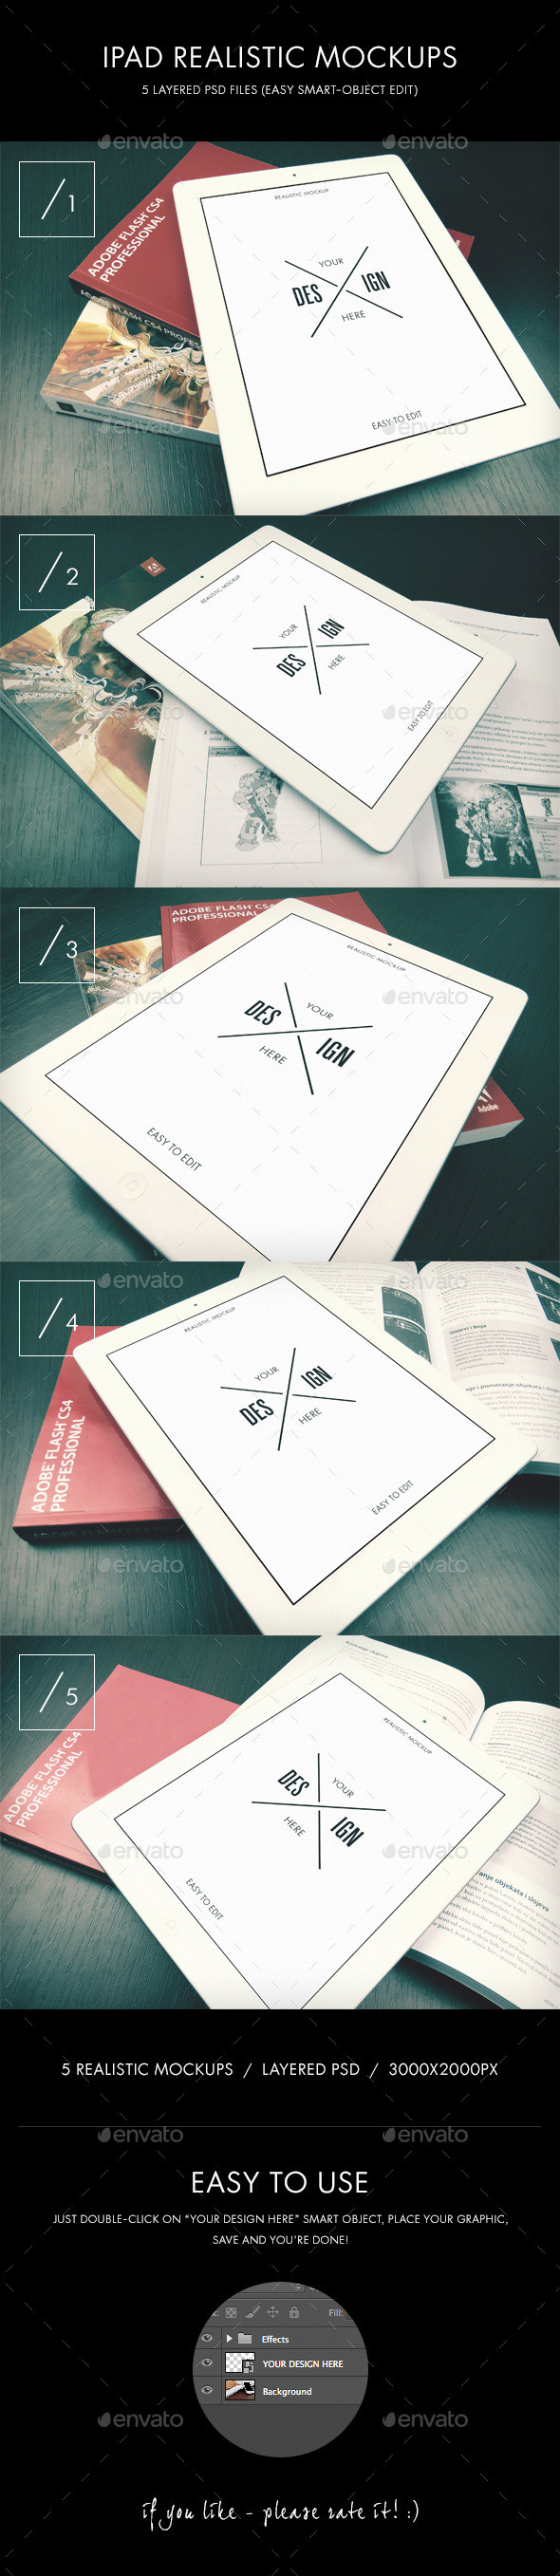 Ipad realistic mockups imagepreview